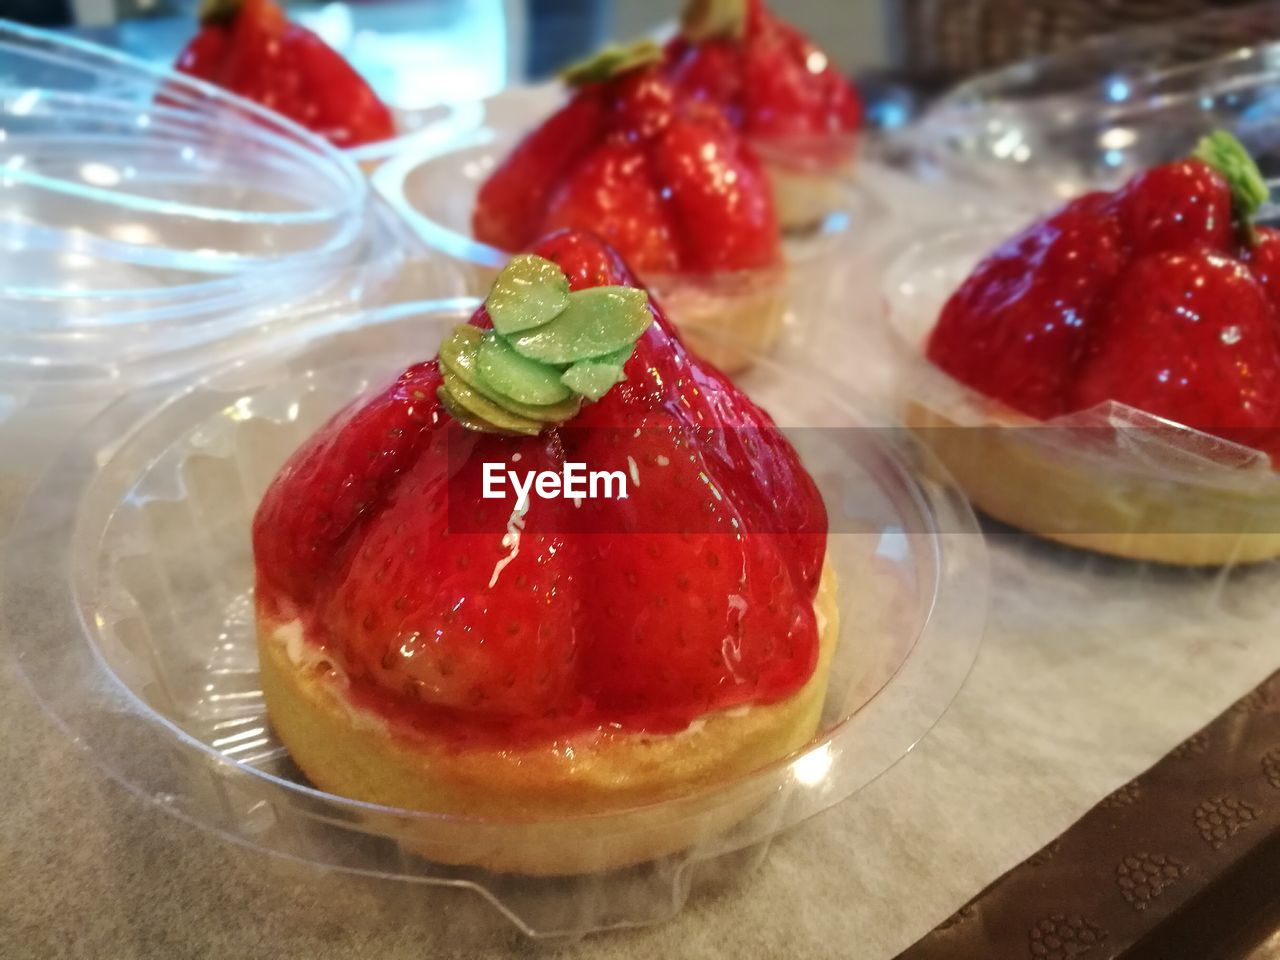 sweet food, food and drink, food, strawberry, freshness, indulgence, dessert, temptation, fruit, still life, indoors, ready-to-eat, table, unhealthy eating, red, no people, plate, serving size, jam, close-up, tart - dessert, cheesecake, day